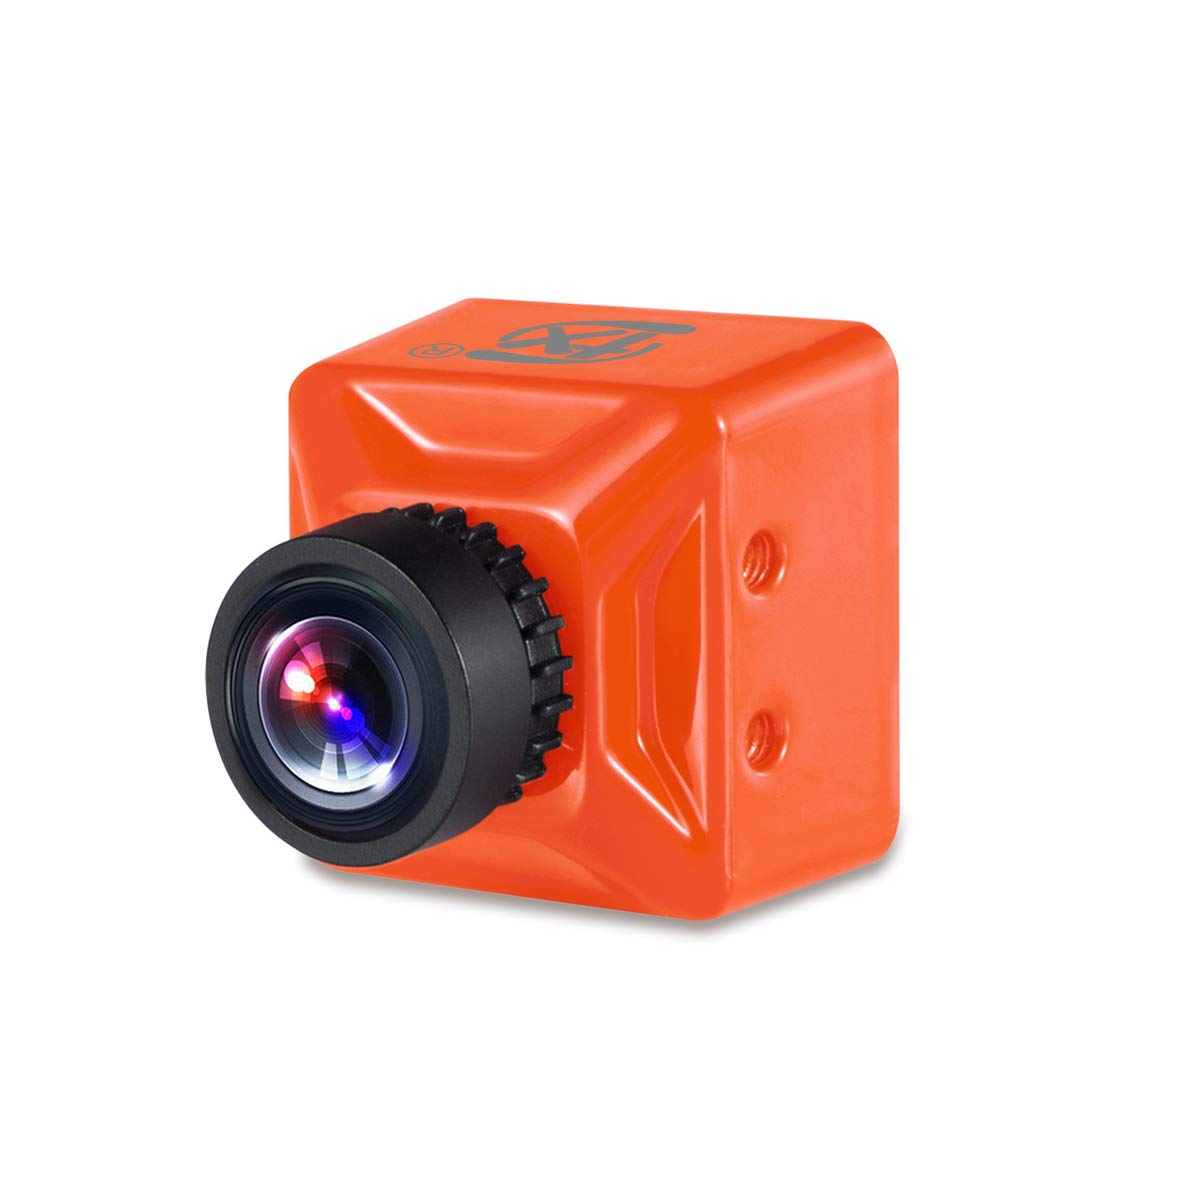 Crazepony FXT FPV Camera Mars S 1000TVL 2.1mm Lens NTSC CMOS Camera Super WDR Input 4:3 Screen Support OSD No Jello with Multi-Functional Bracket for FPV Racing Drone